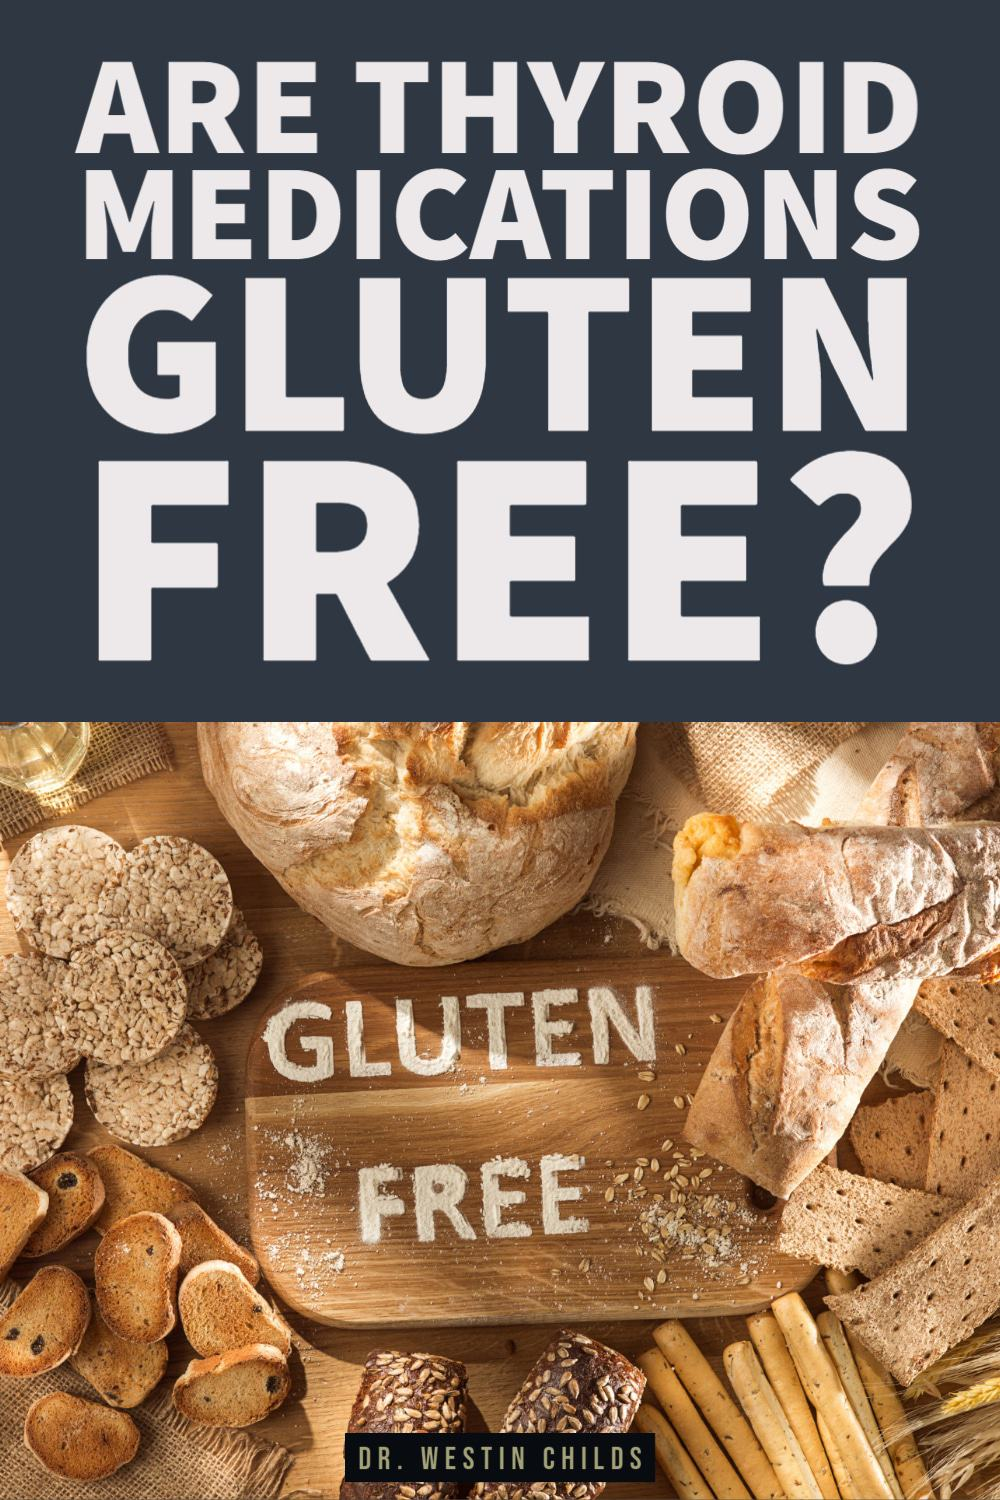 are thyroid medications gluten free?